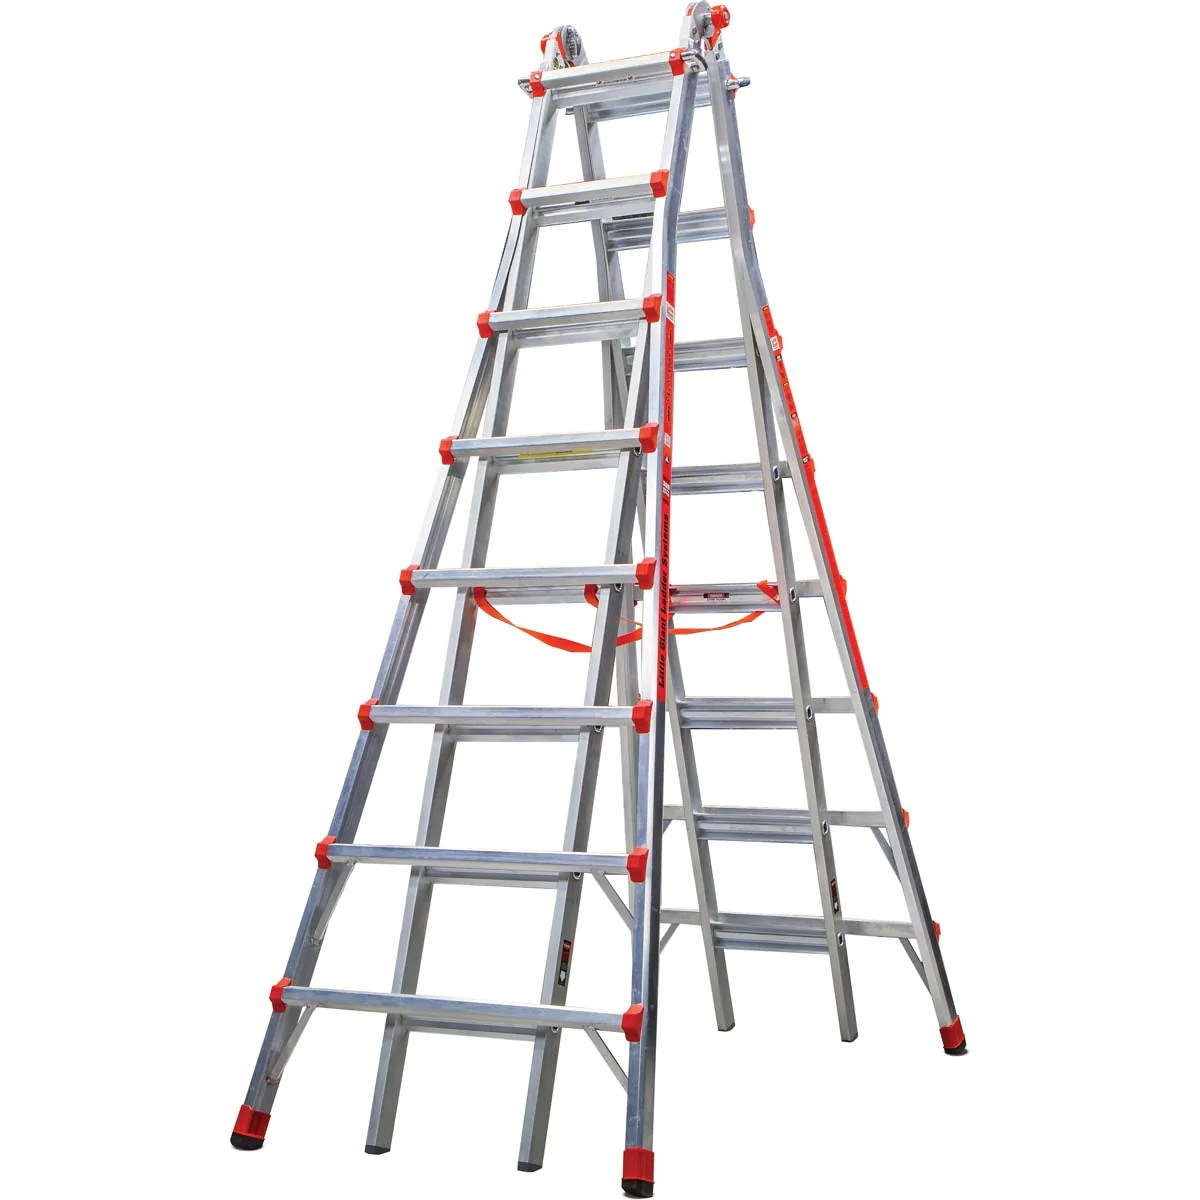 Platform Ladder Bunnings Little Giant Skyscraper Ladder Type 1a Skyscraper Mxz Ladders